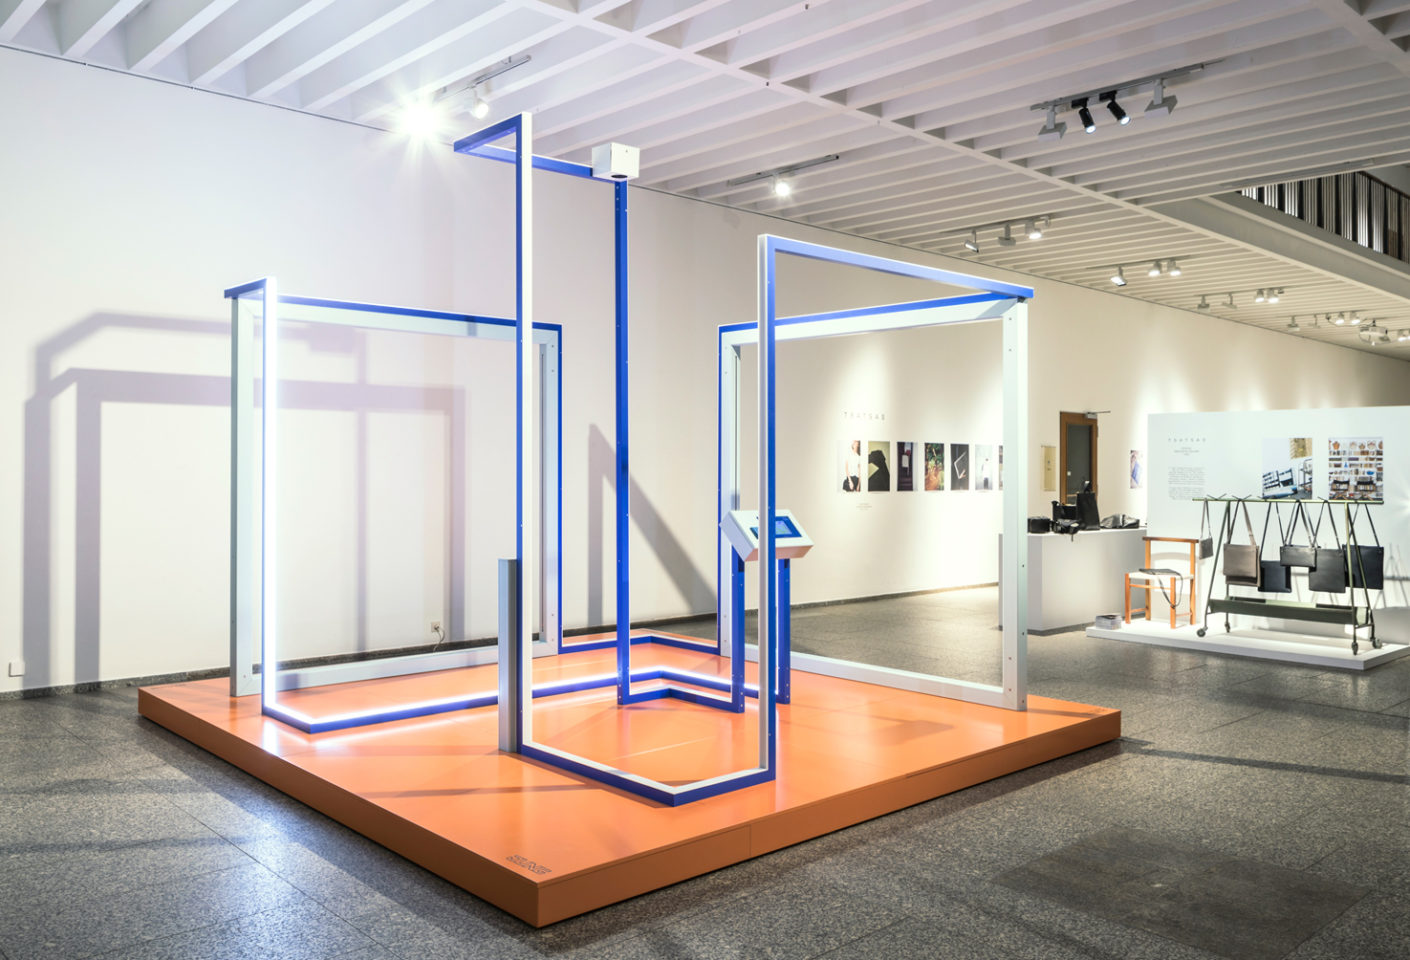 The installation by Jung highlights all of flat switch LS 990's fundamental aspects for its 50th anniversary: its geometrical shape, touch by human users, its movement and the response this elicits in the form of light and sound in the space.